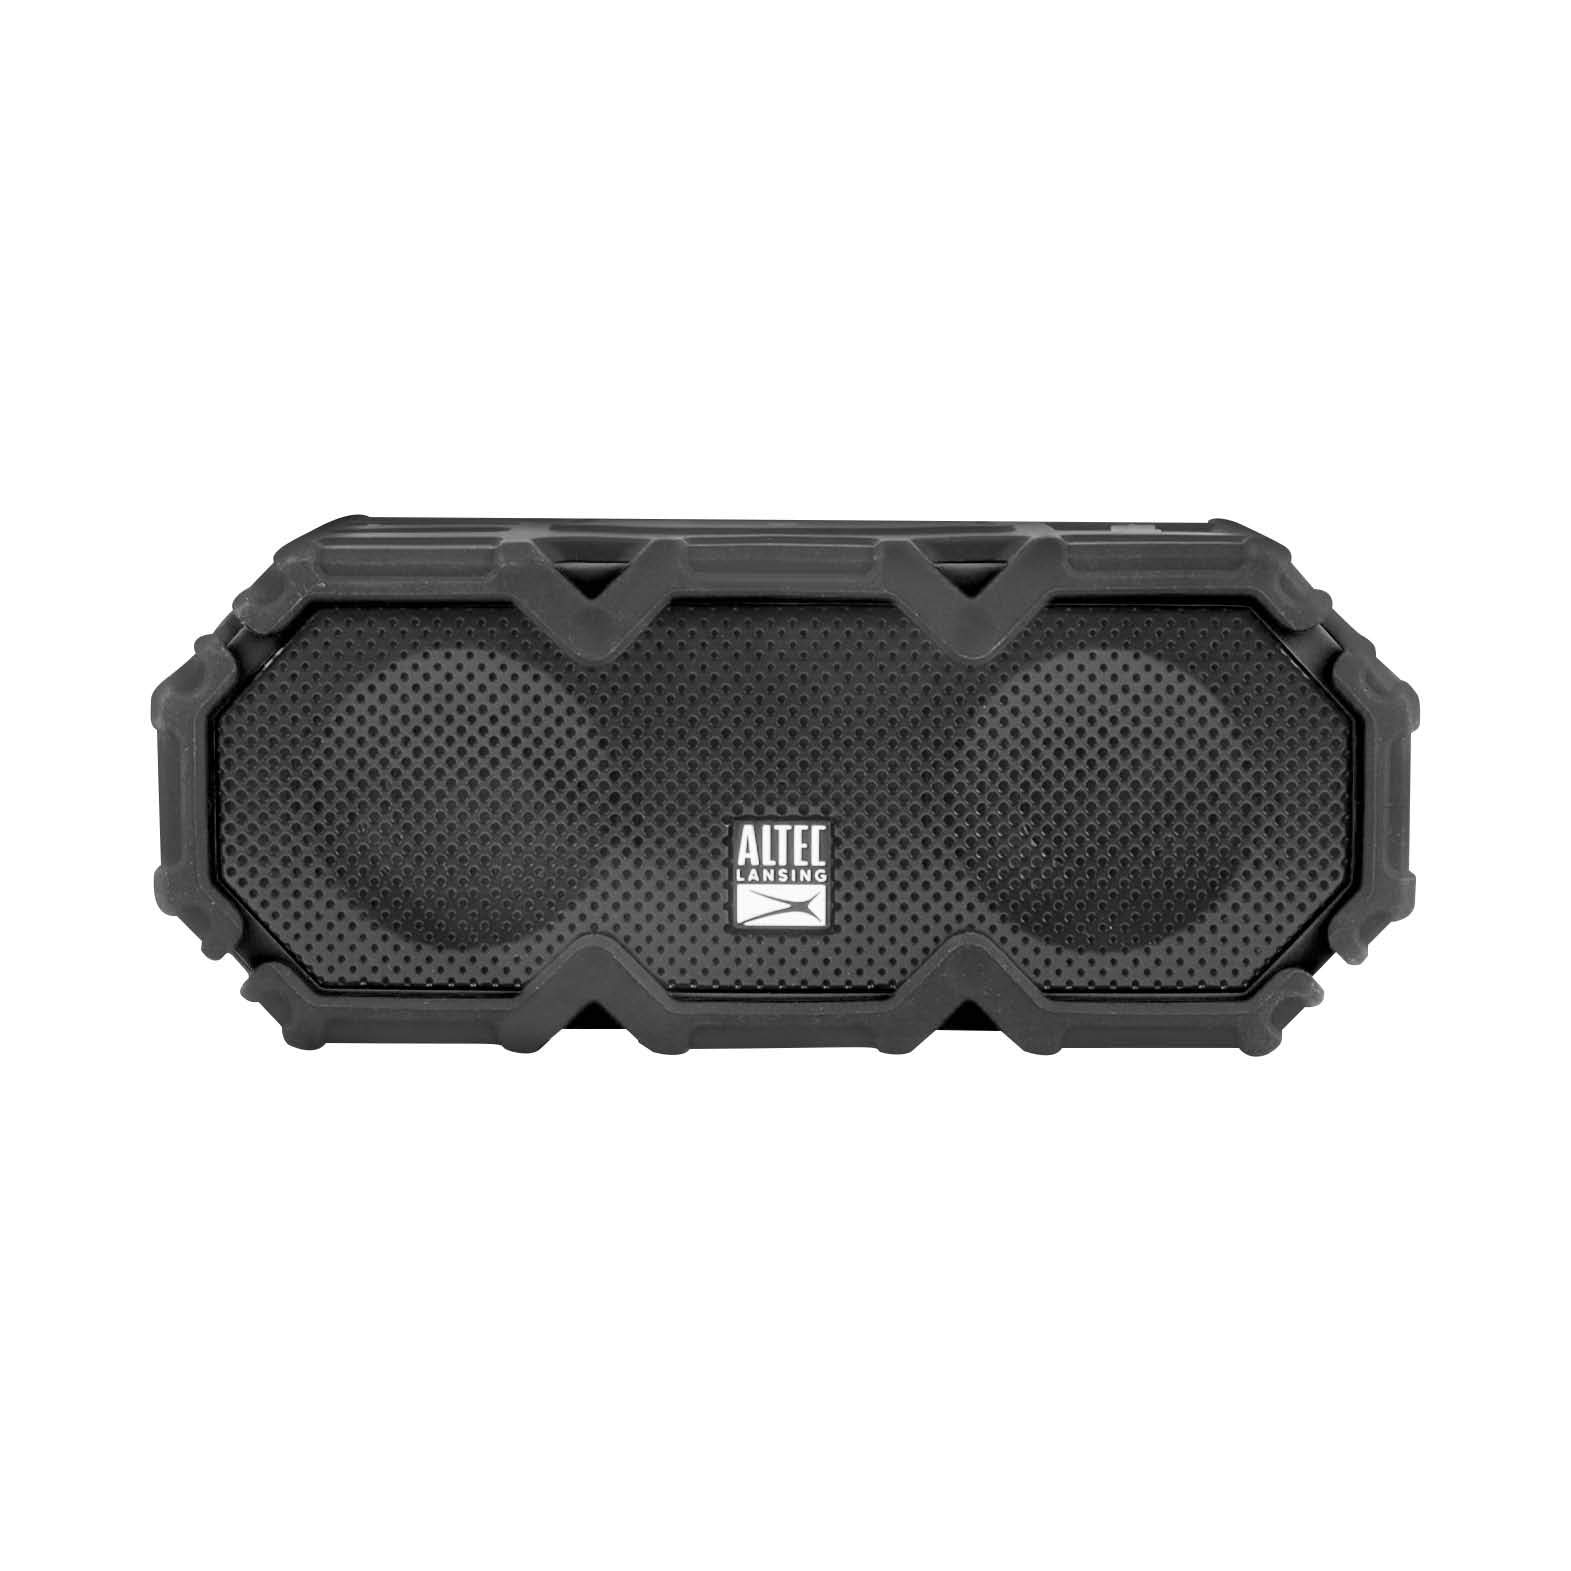 Altec Lansing IMW580 Lifejacket Jolt Heavy Duty Rugged and Waterproof Portable Bluetooth Speaker with Qi Wireless Charging, 20 Hours of Battery Life, 100FT Wireless Range and Voice Assistant